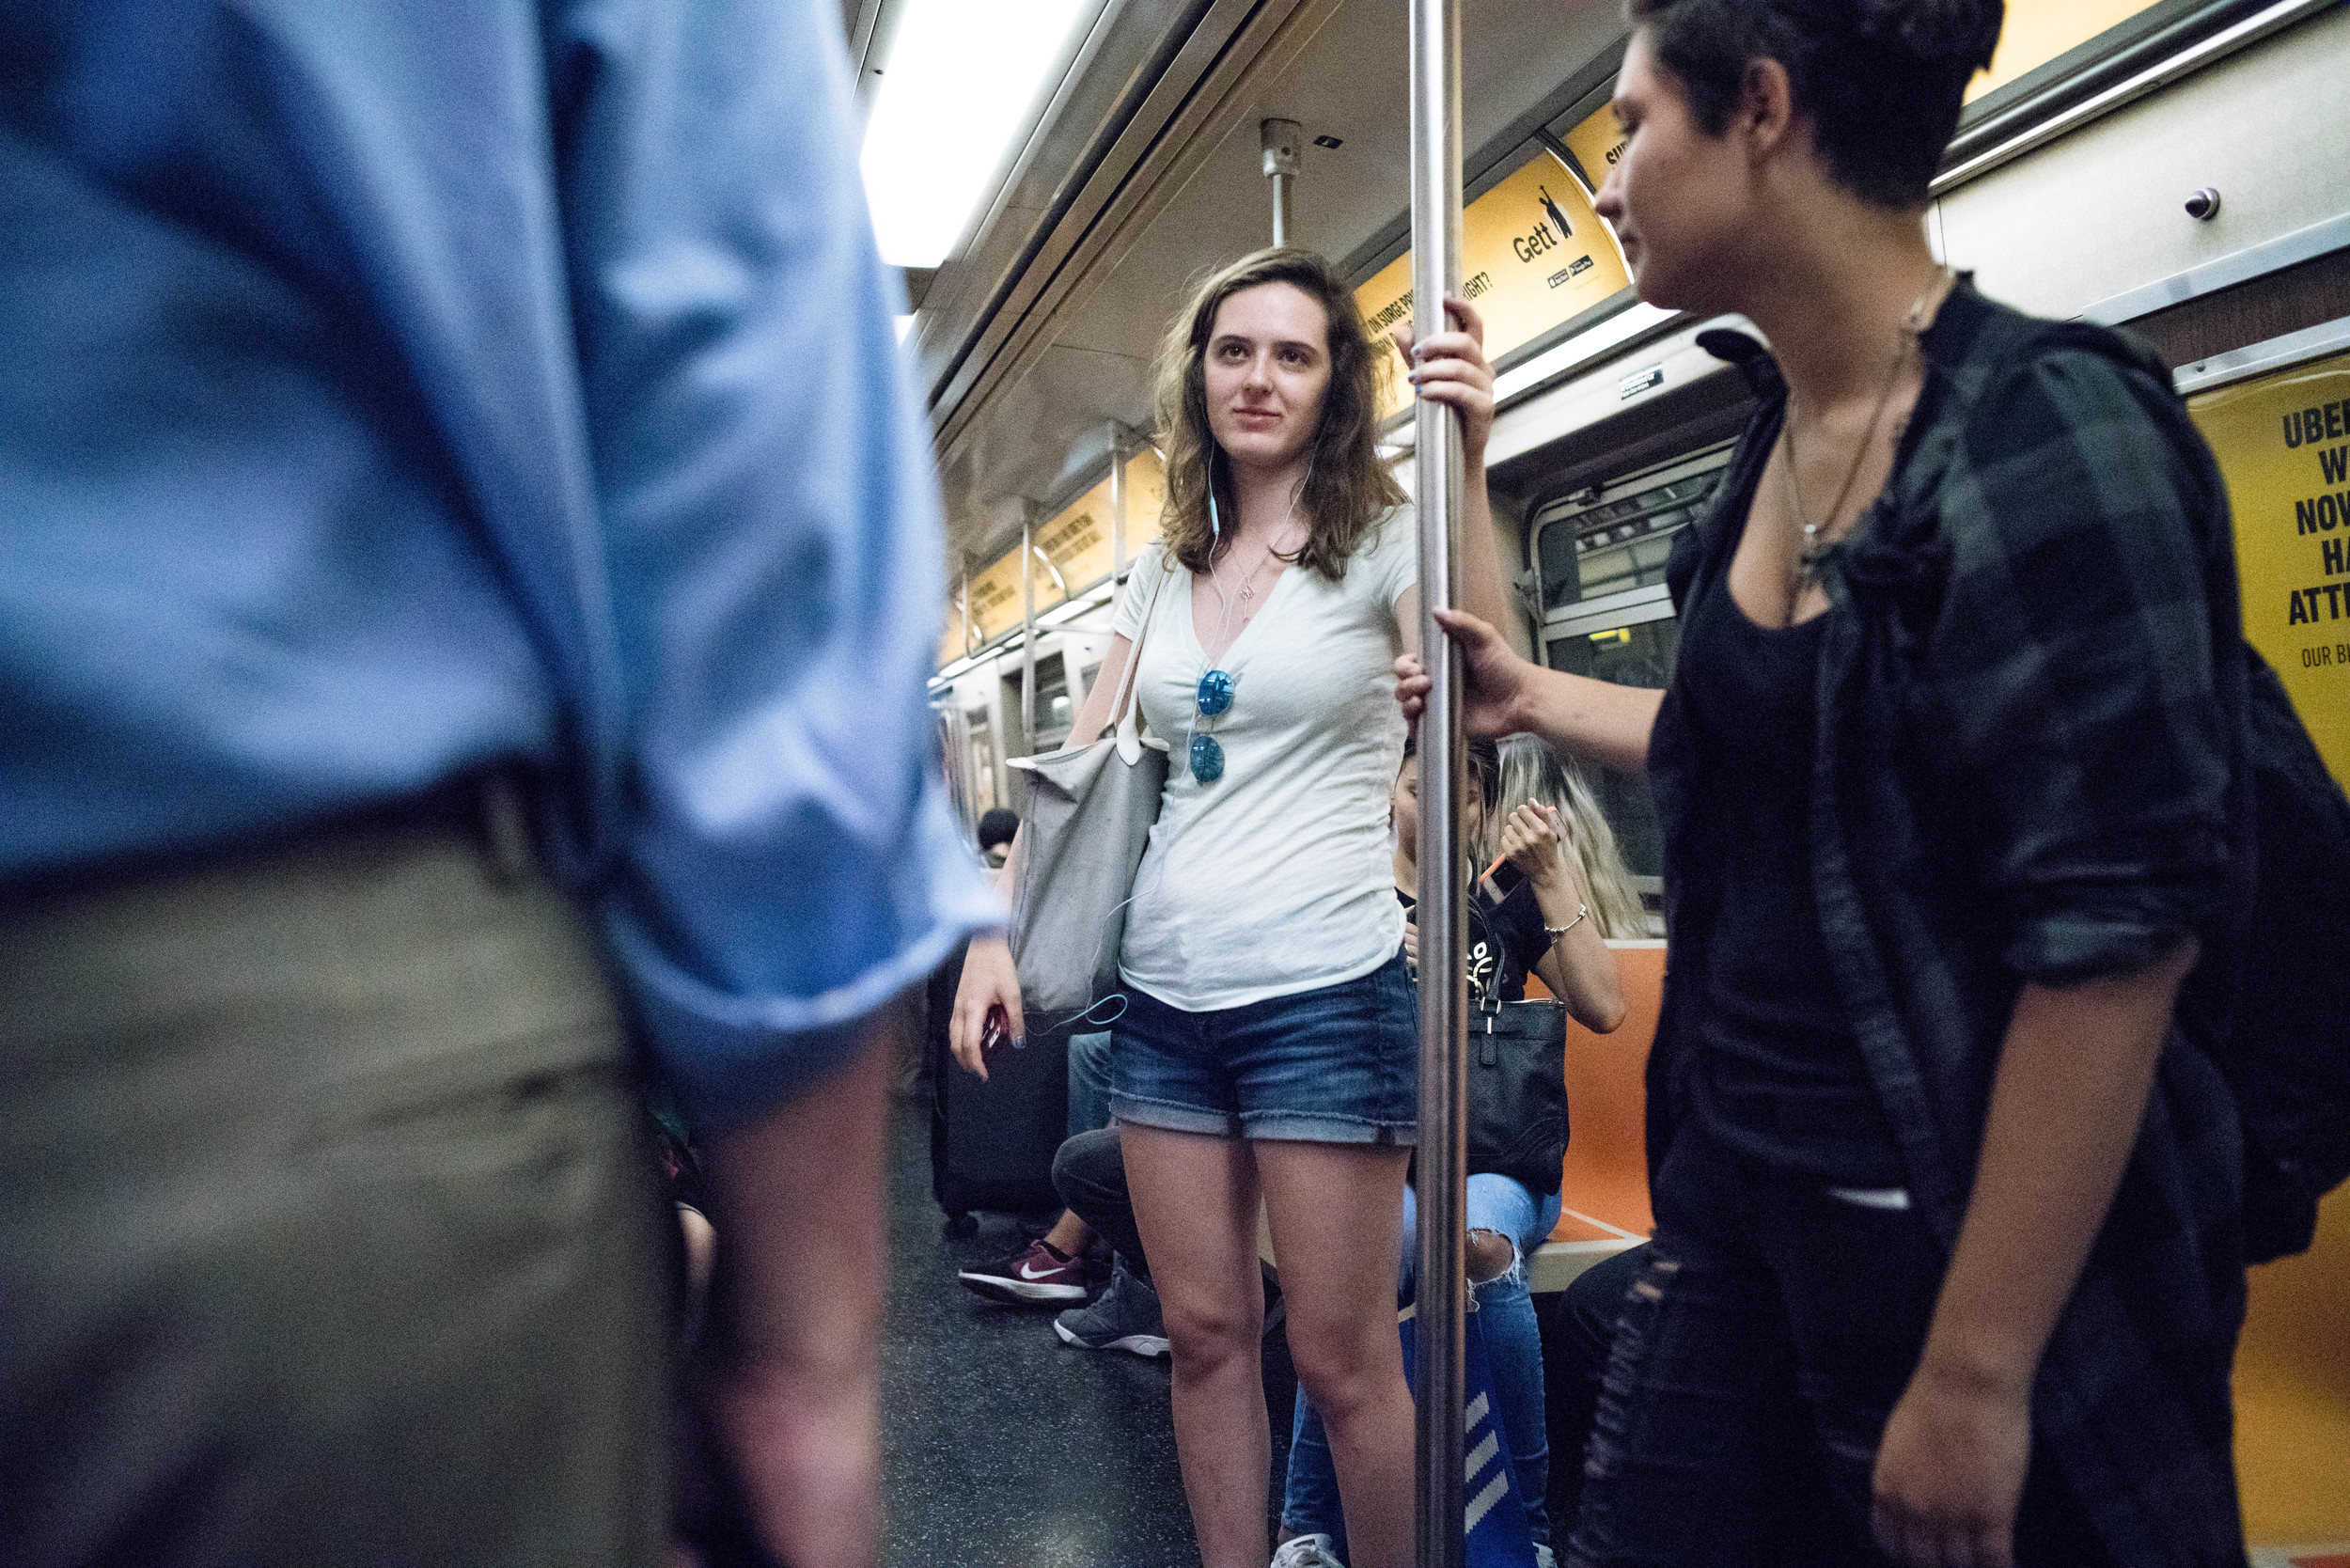 The only thing worse than the lighting on the Express Train is the Local Train. I do not understand that ghastly greenish tinge inside the subway car. Thankfully, the Sony A7r MKII's better white balance made it easy to fix in post. A Leica M240 or M9 would not get this shot.